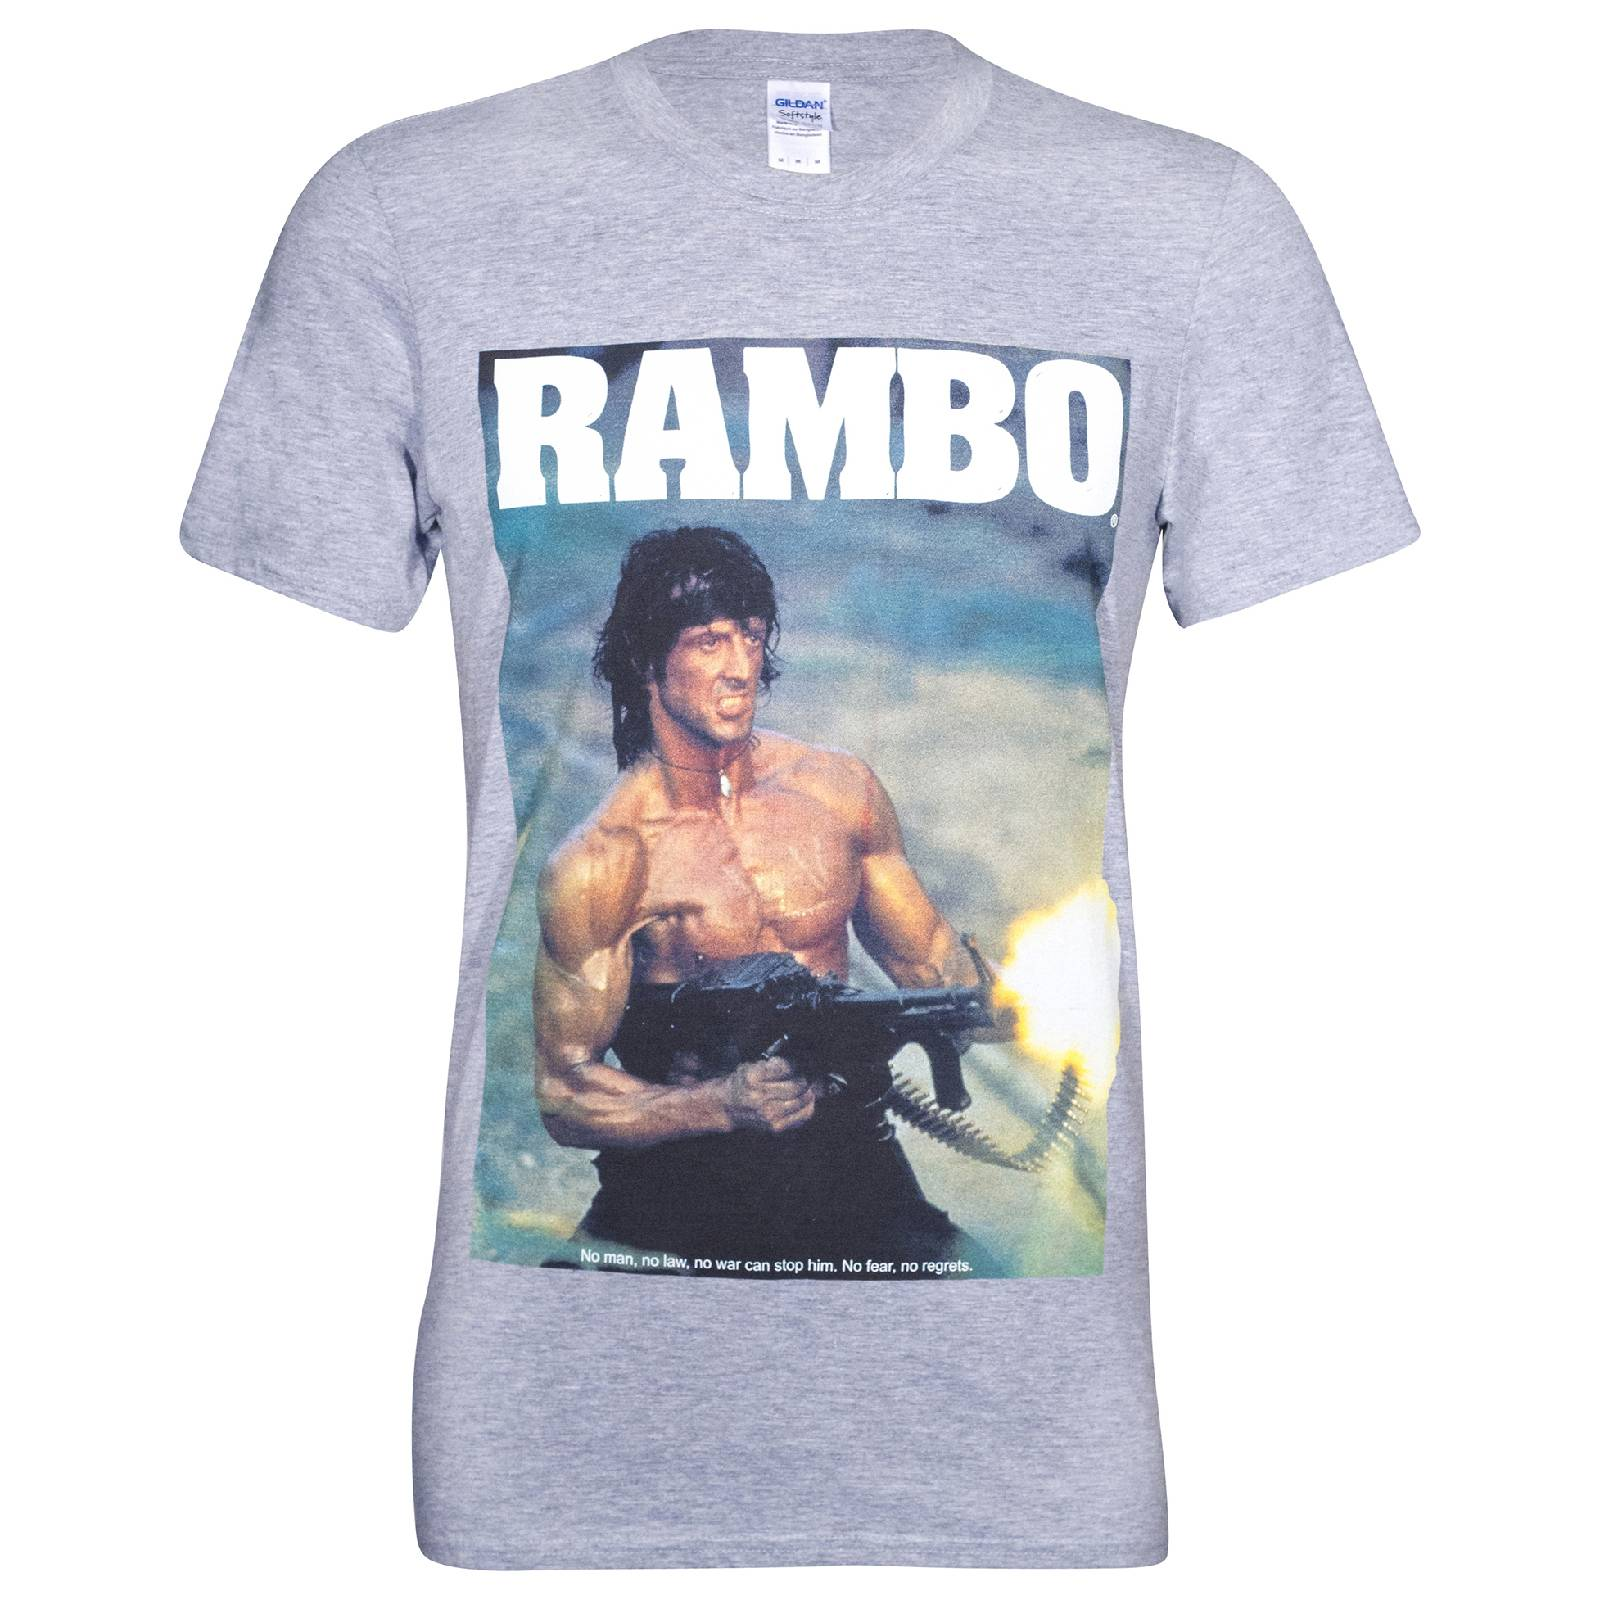 Geek Clothing Rambo Men's Gun T-Shirt - Grey - S - Grey